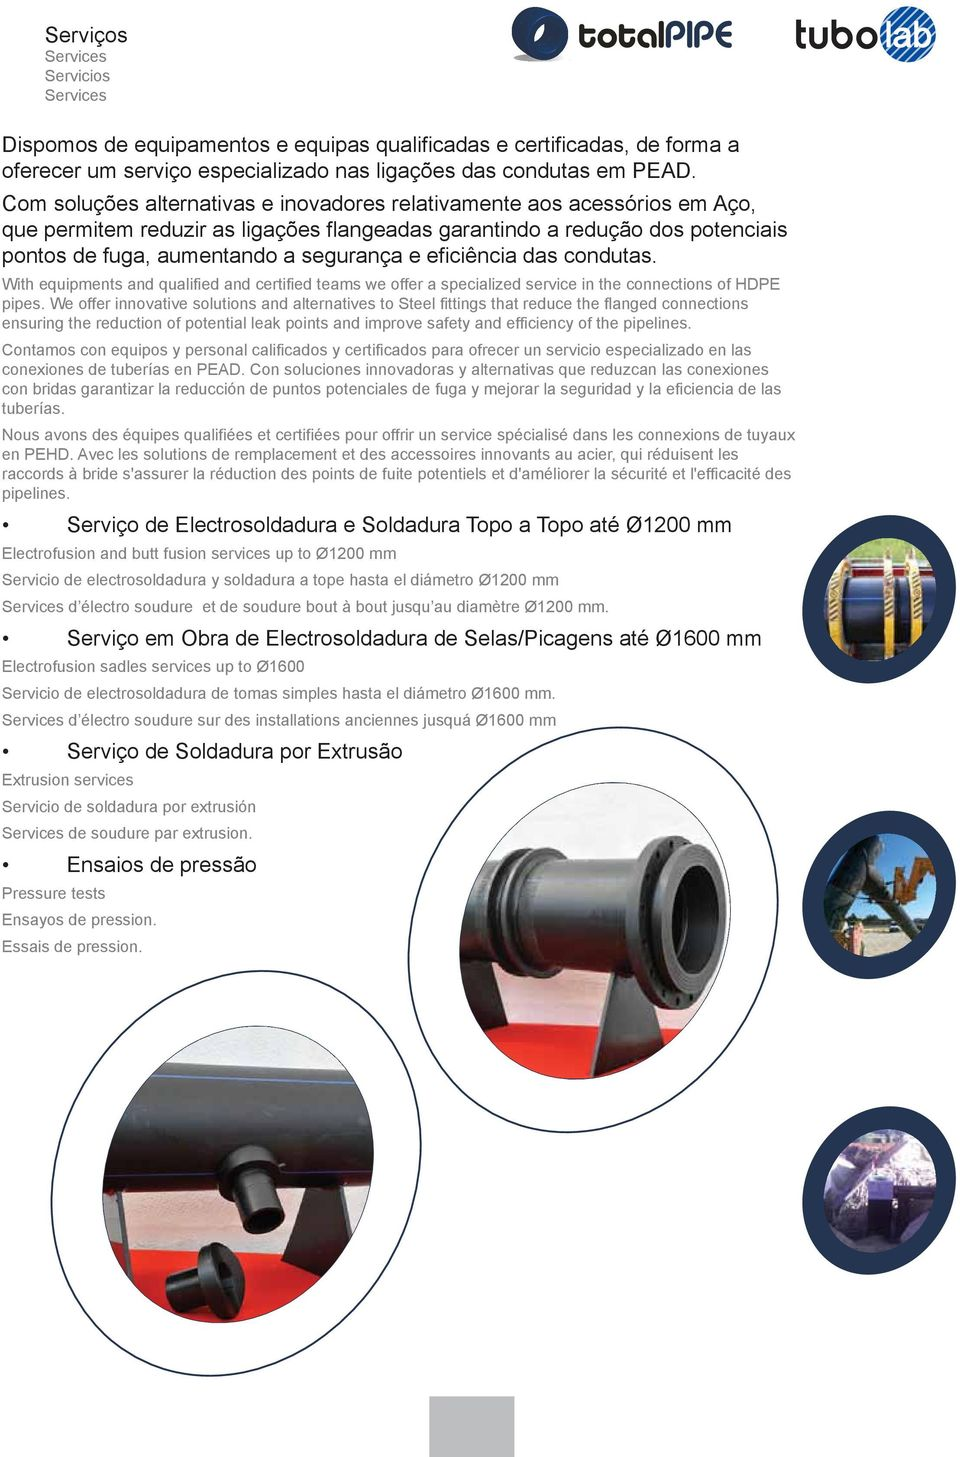 eficiência das condutas. With equipments and qualified and certified teams we offer a specialized service in the connections of HDPE pipes.